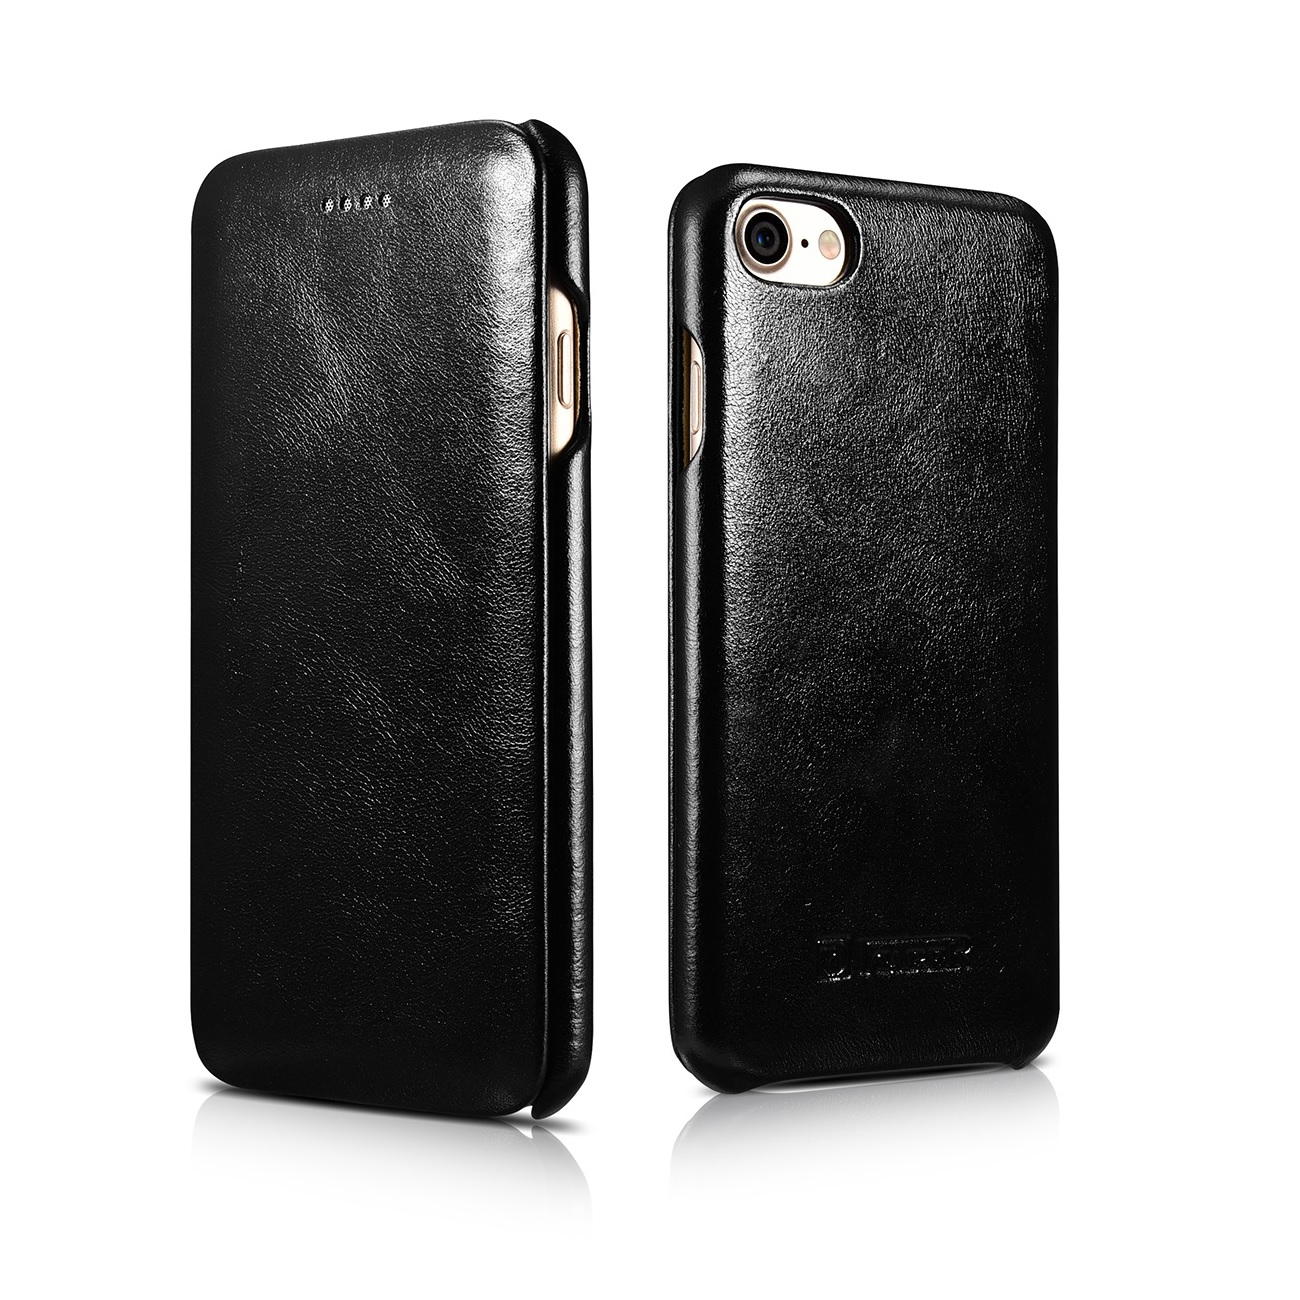 echt leder schutz h lle f r apple iphone 7 7 plus flip case handy tasche cover. Black Bedroom Furniture Sets. Home Design Ideas